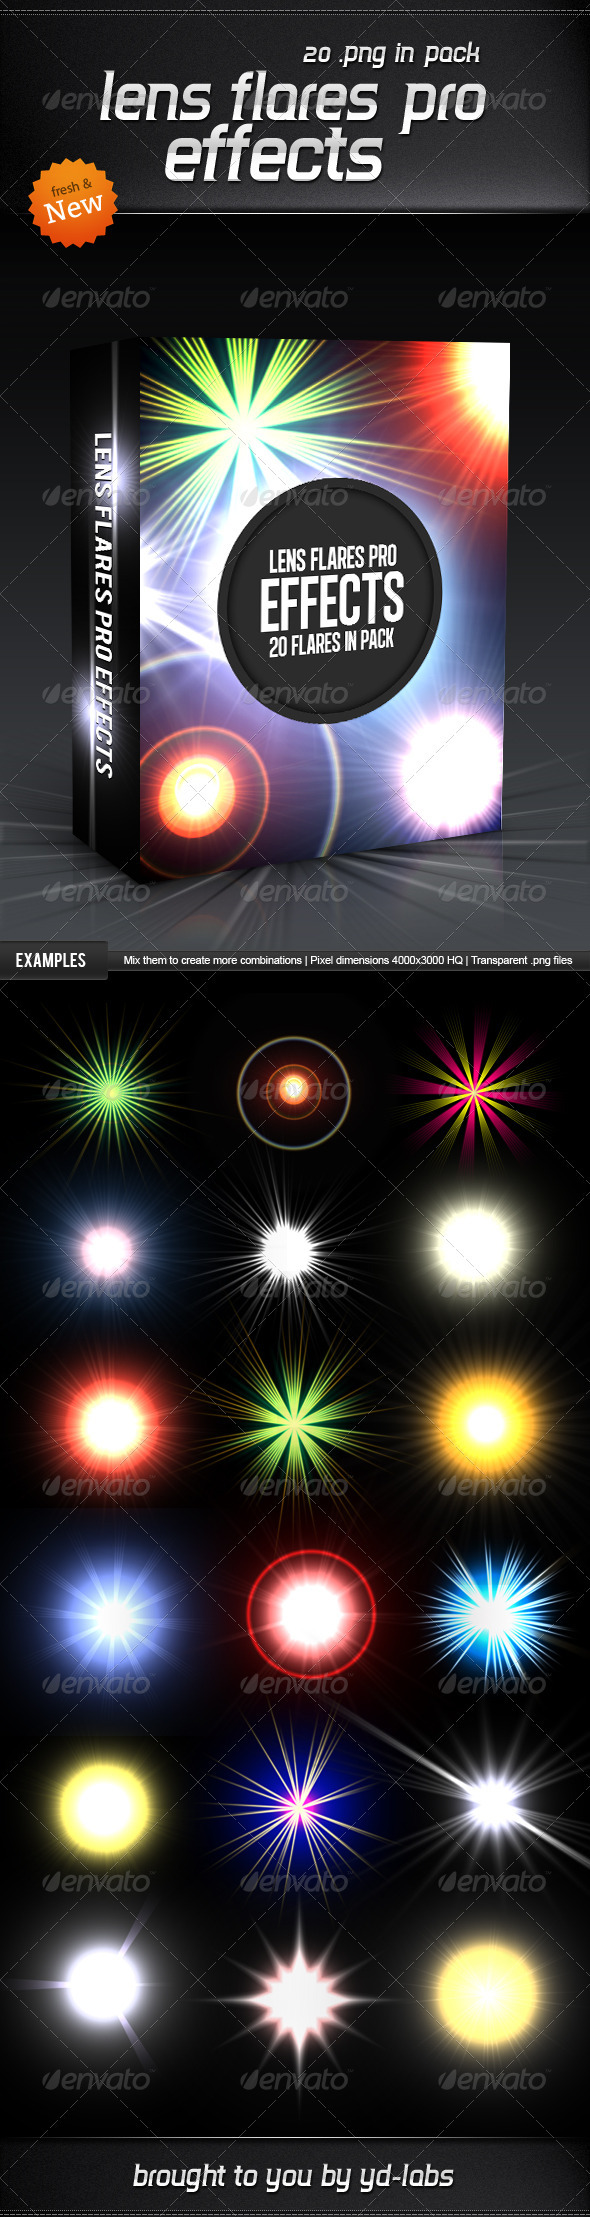 GraphicRiver Lens Flares Pro Effects 3628831